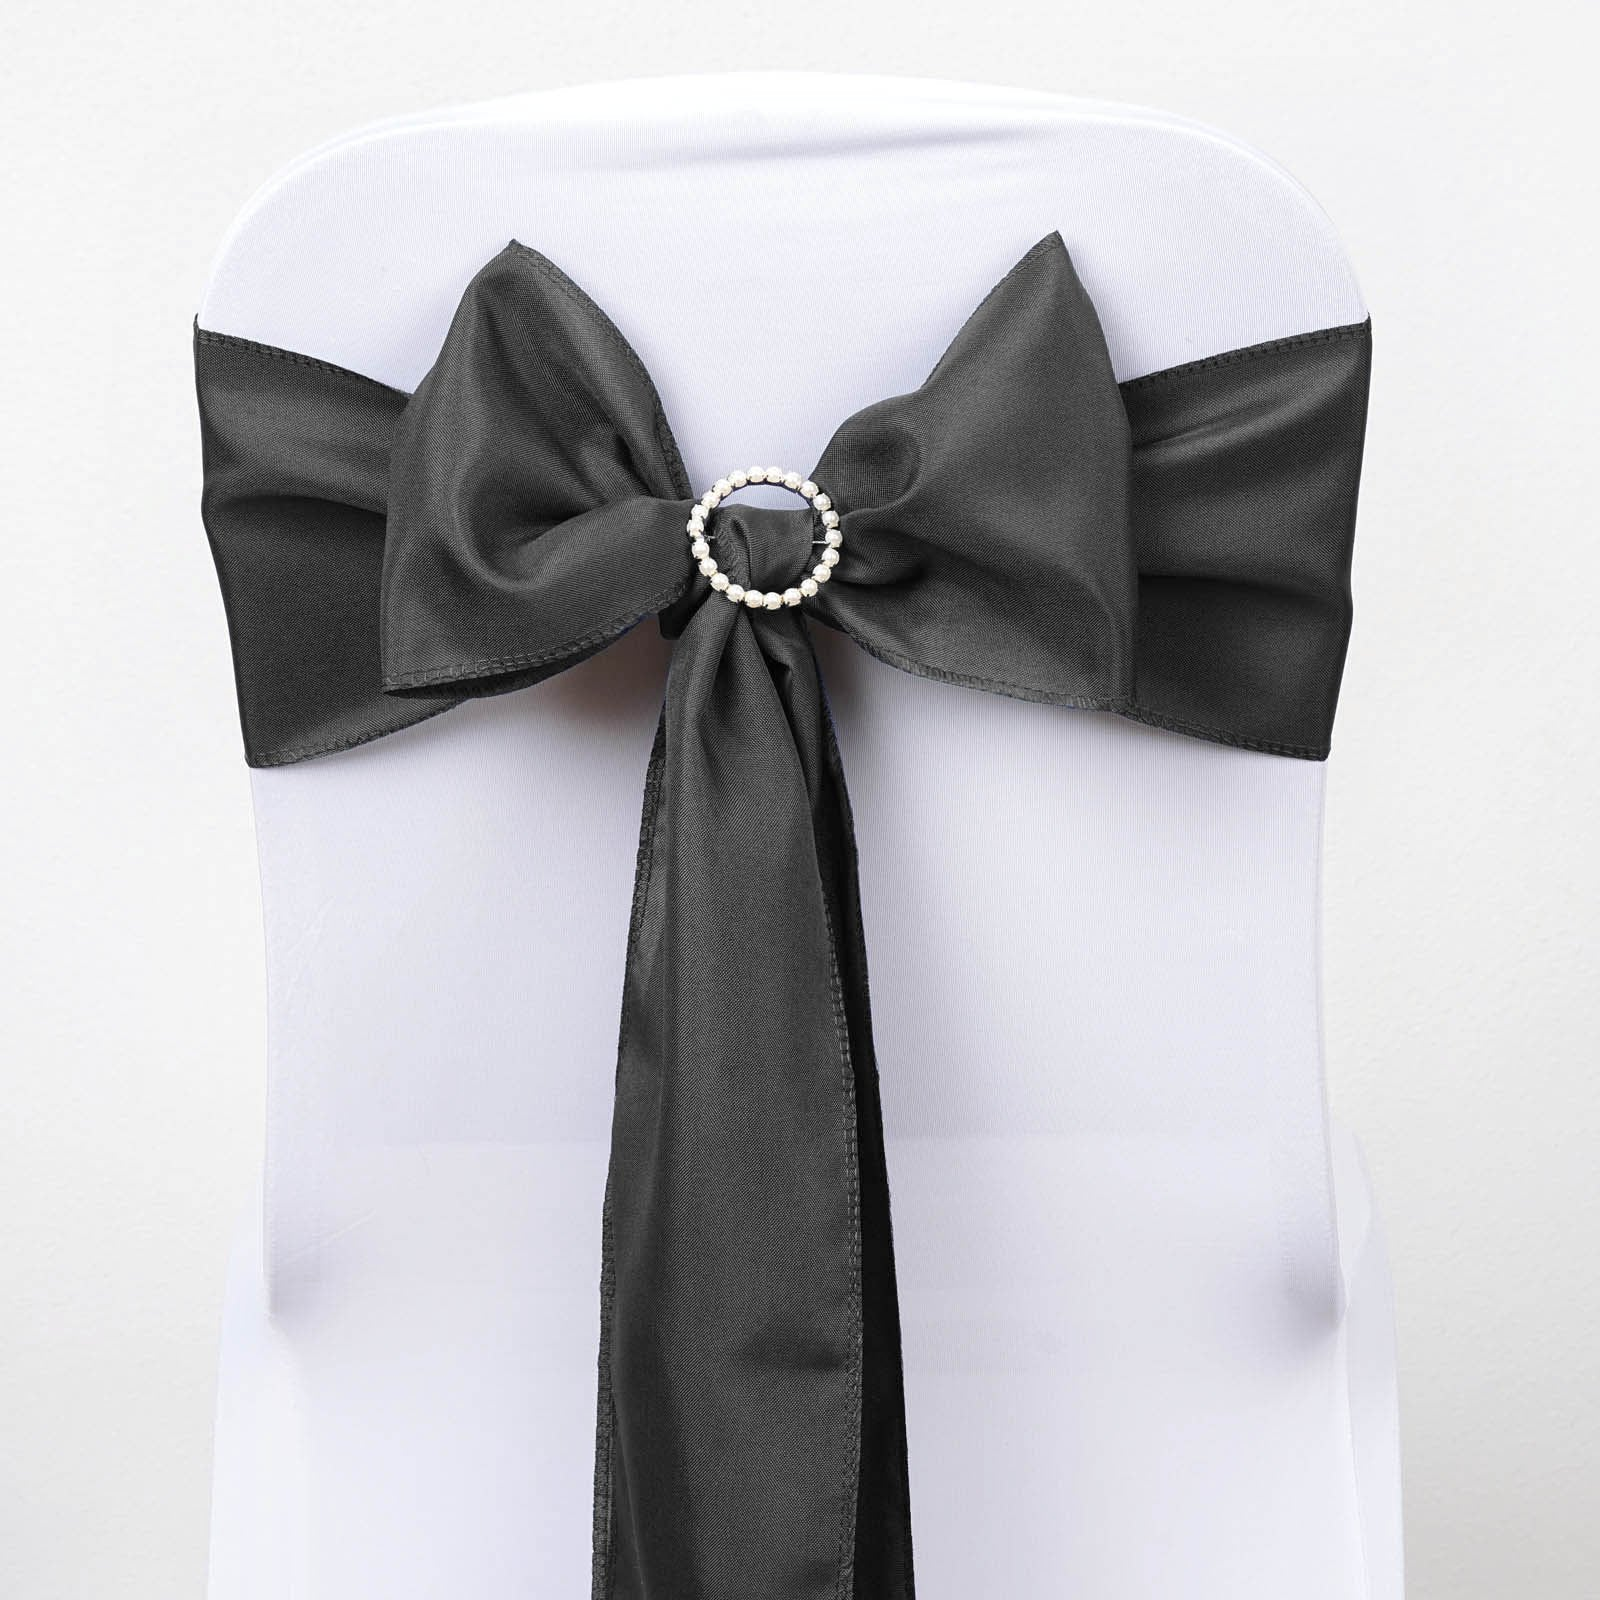 5 Pcs Charcoal Grey Polyester Chair Sashes Tie Bows Catering Wedding